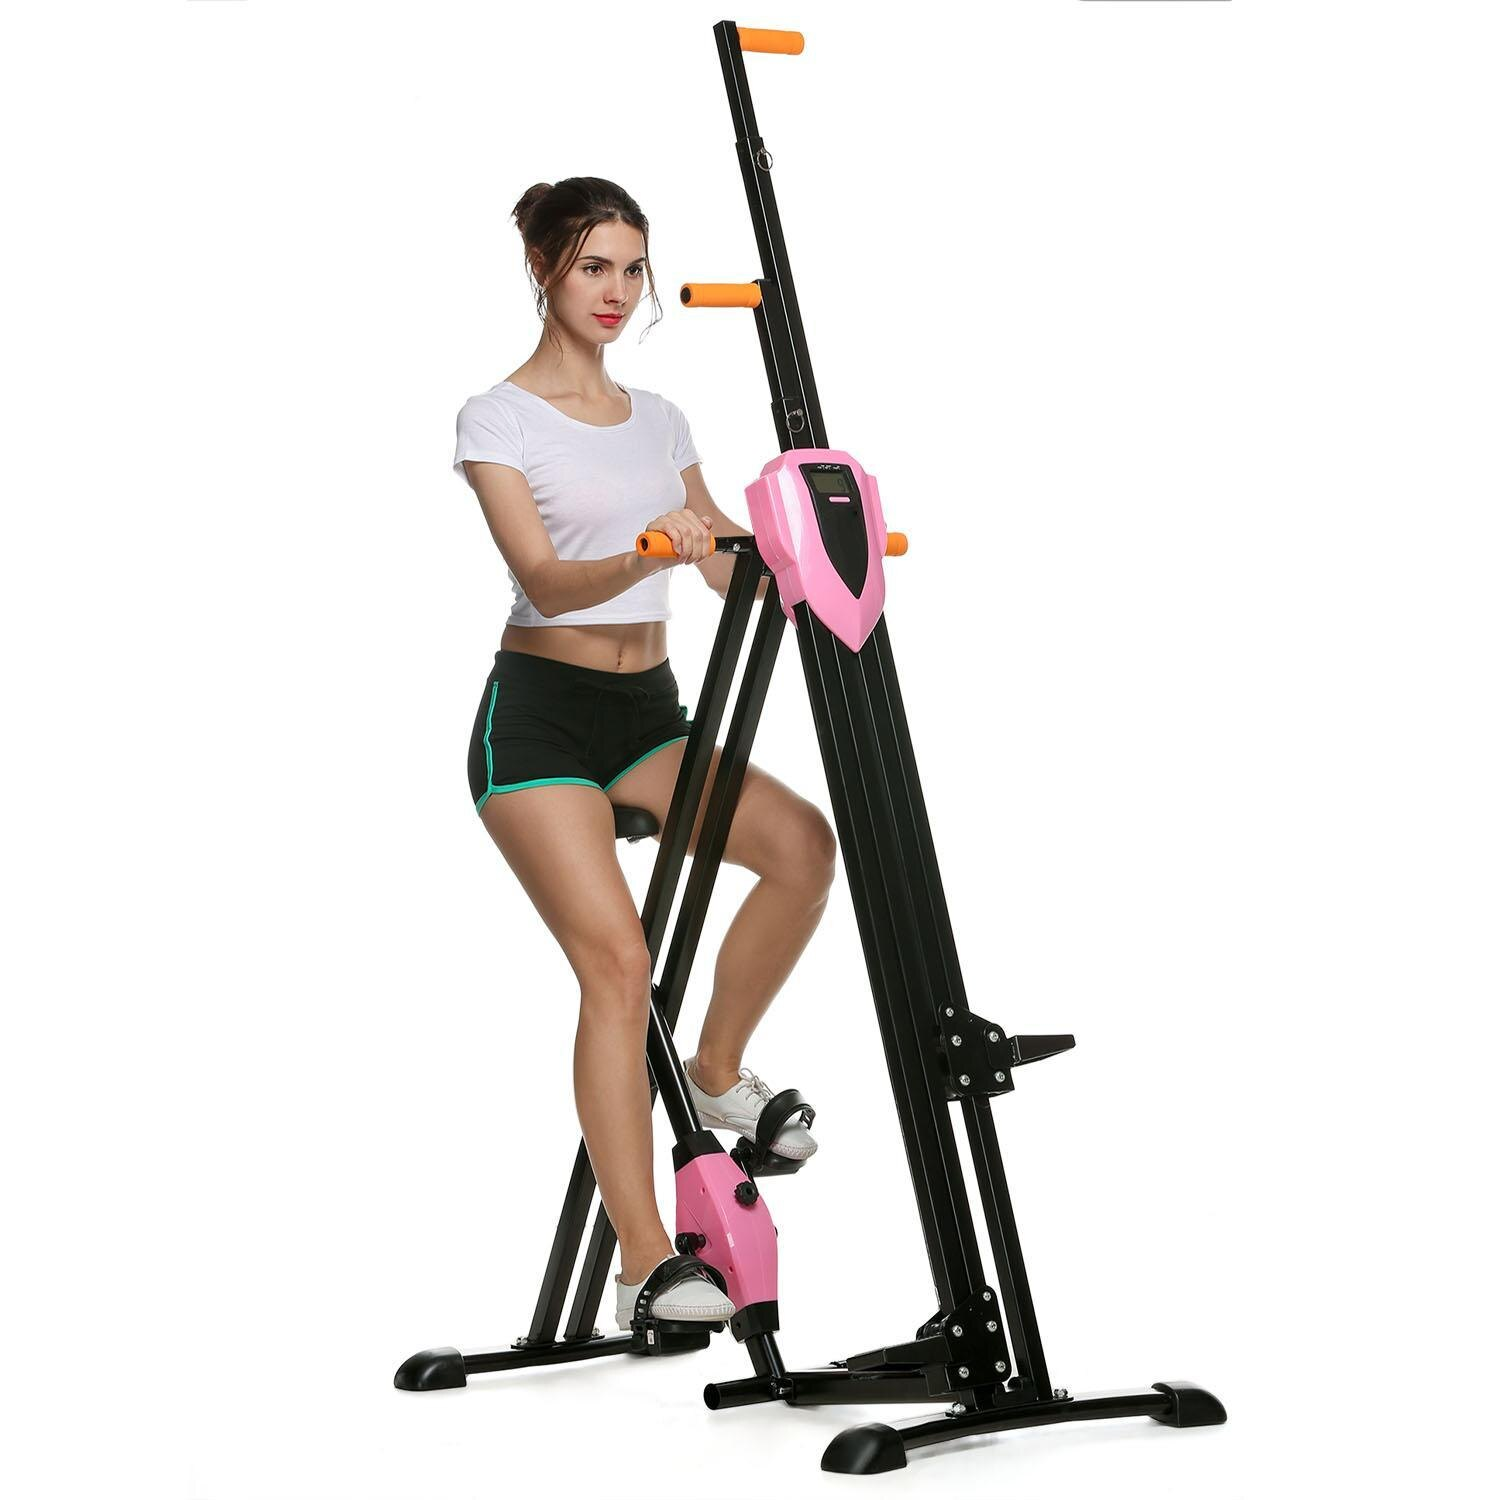 Vertical Climber Gym Exercise Fitness Machine Stepper Cardio Workout Training non-stick grips Legs Arms Abs Calf 1